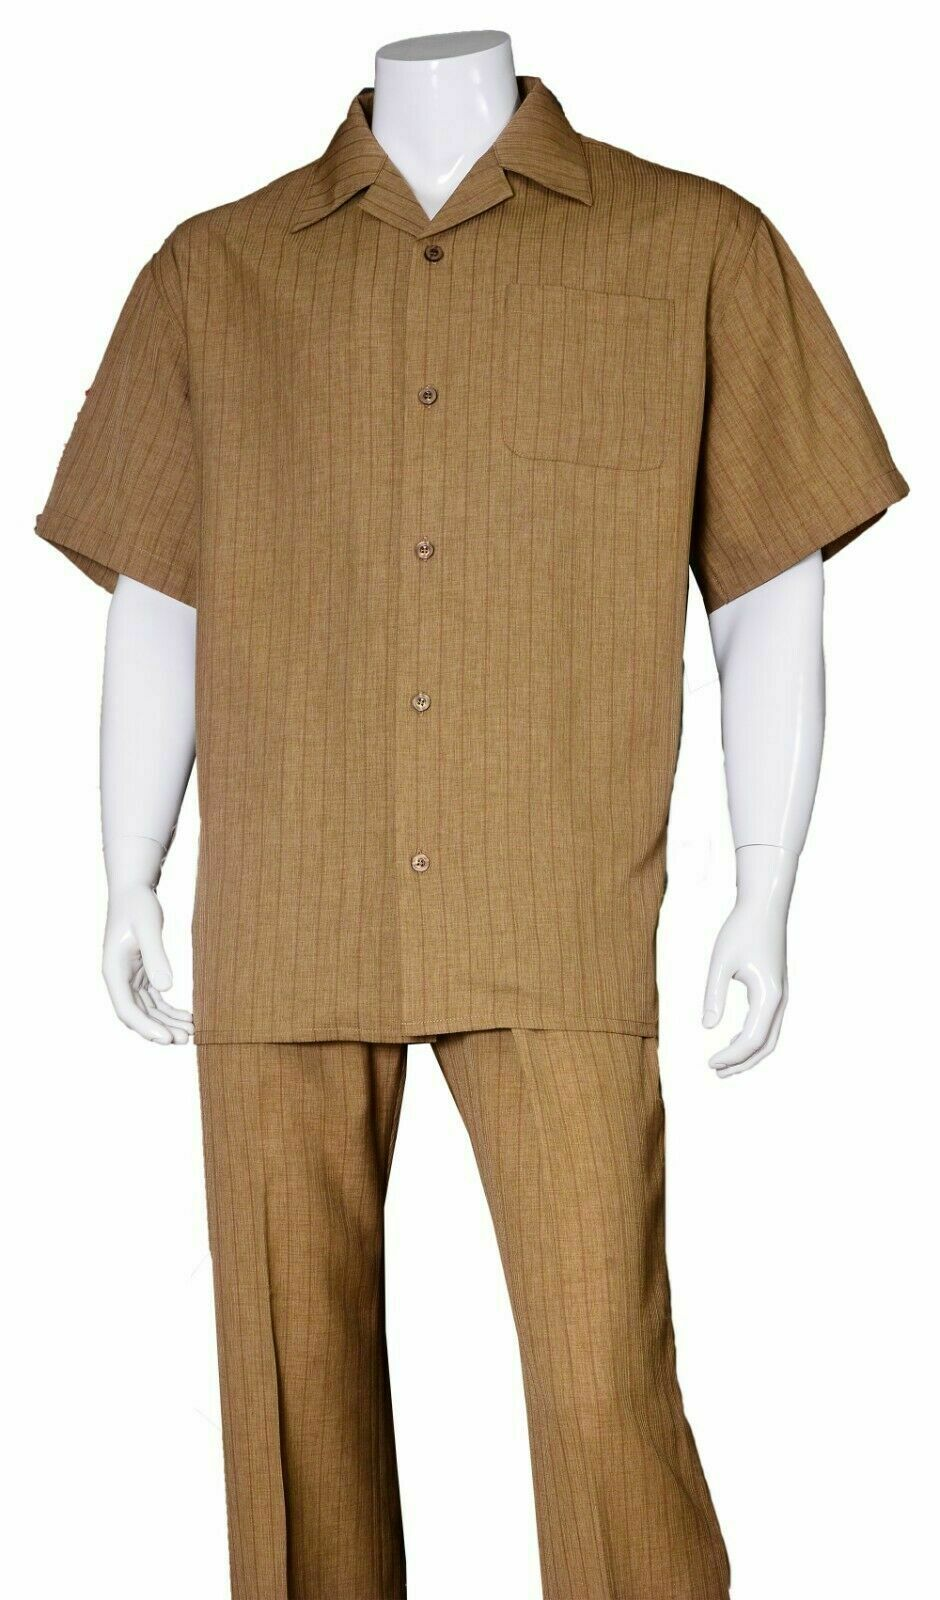 Fortino Landi Walking Set M2971-Brown - Church Suits For Less